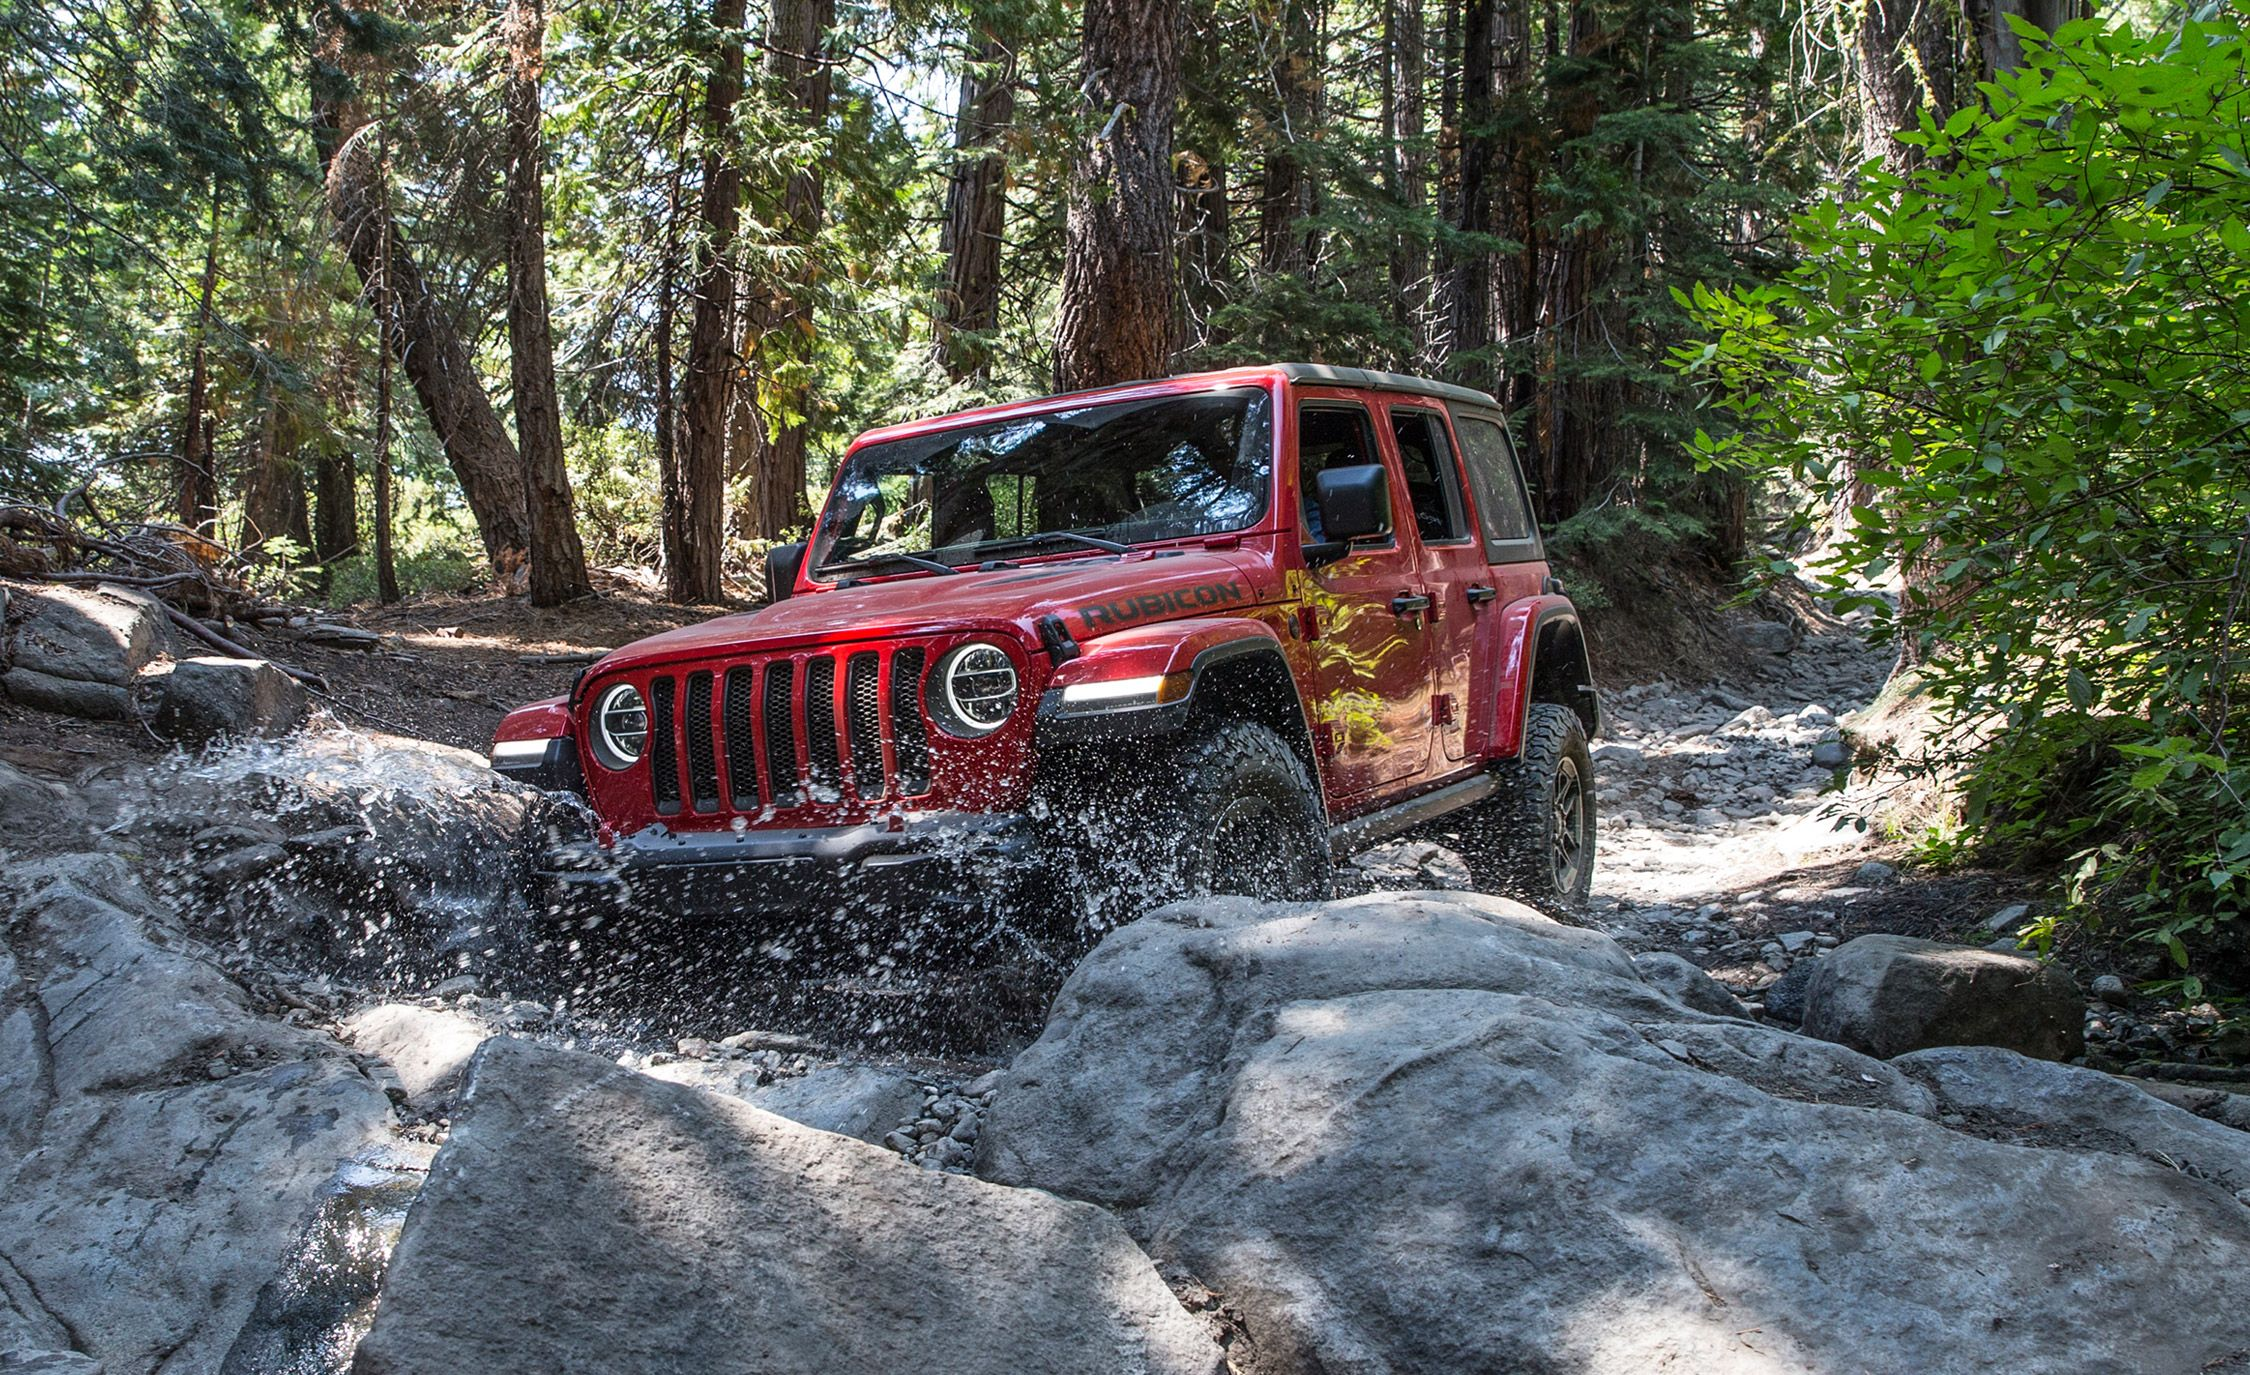 Jeep Trails New Jeep Wrangler On Rubicon Trail Jl Wrangler Rock Crawling